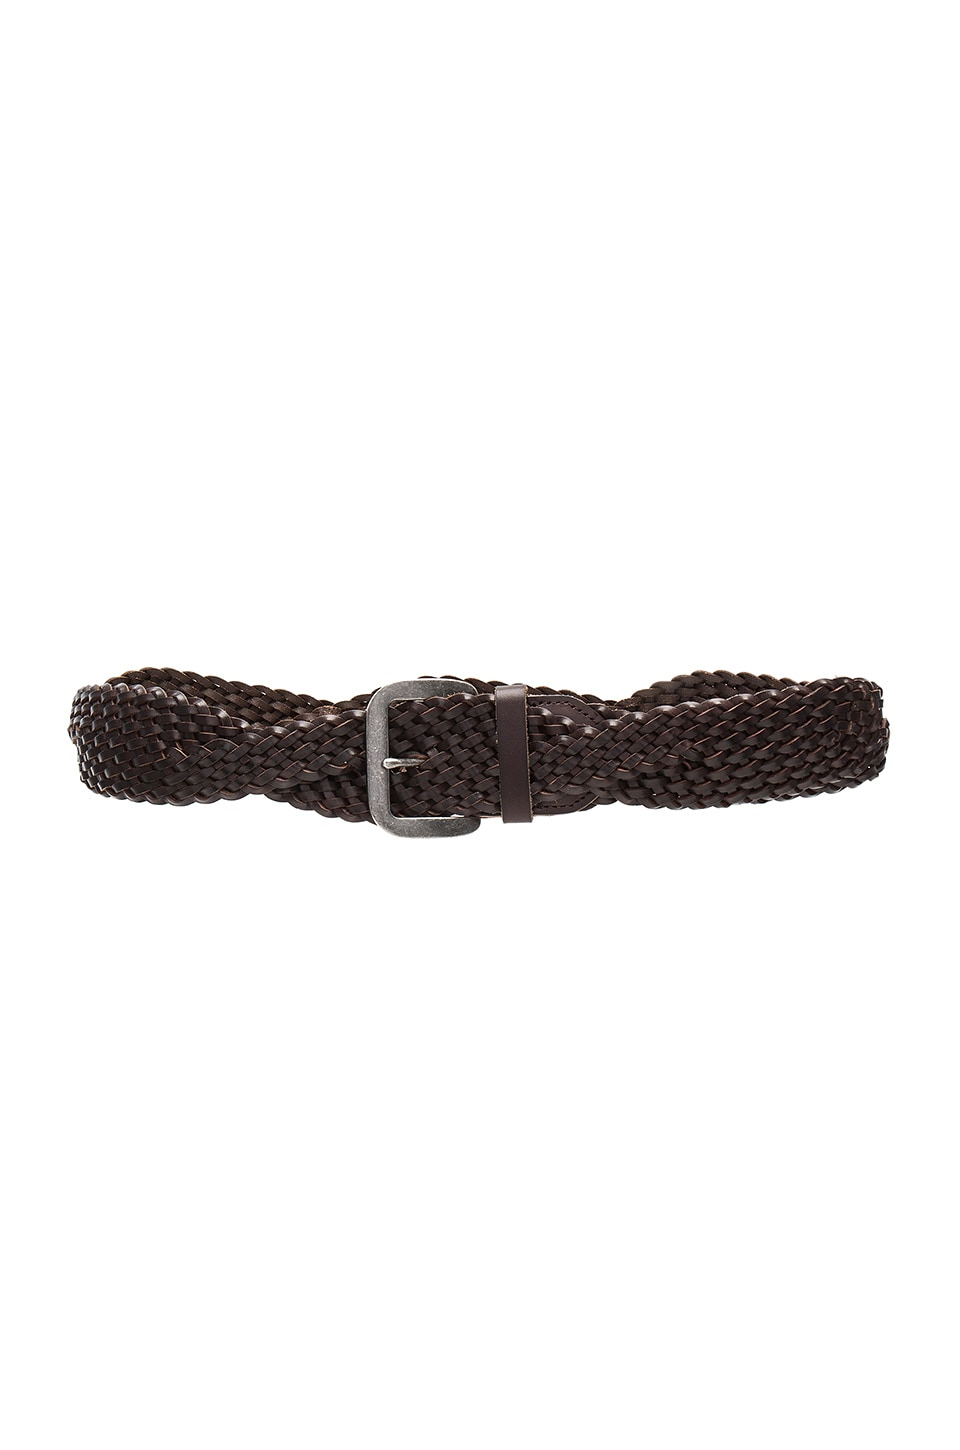 Linea Pelle Twist Braid Belt in Tmoro